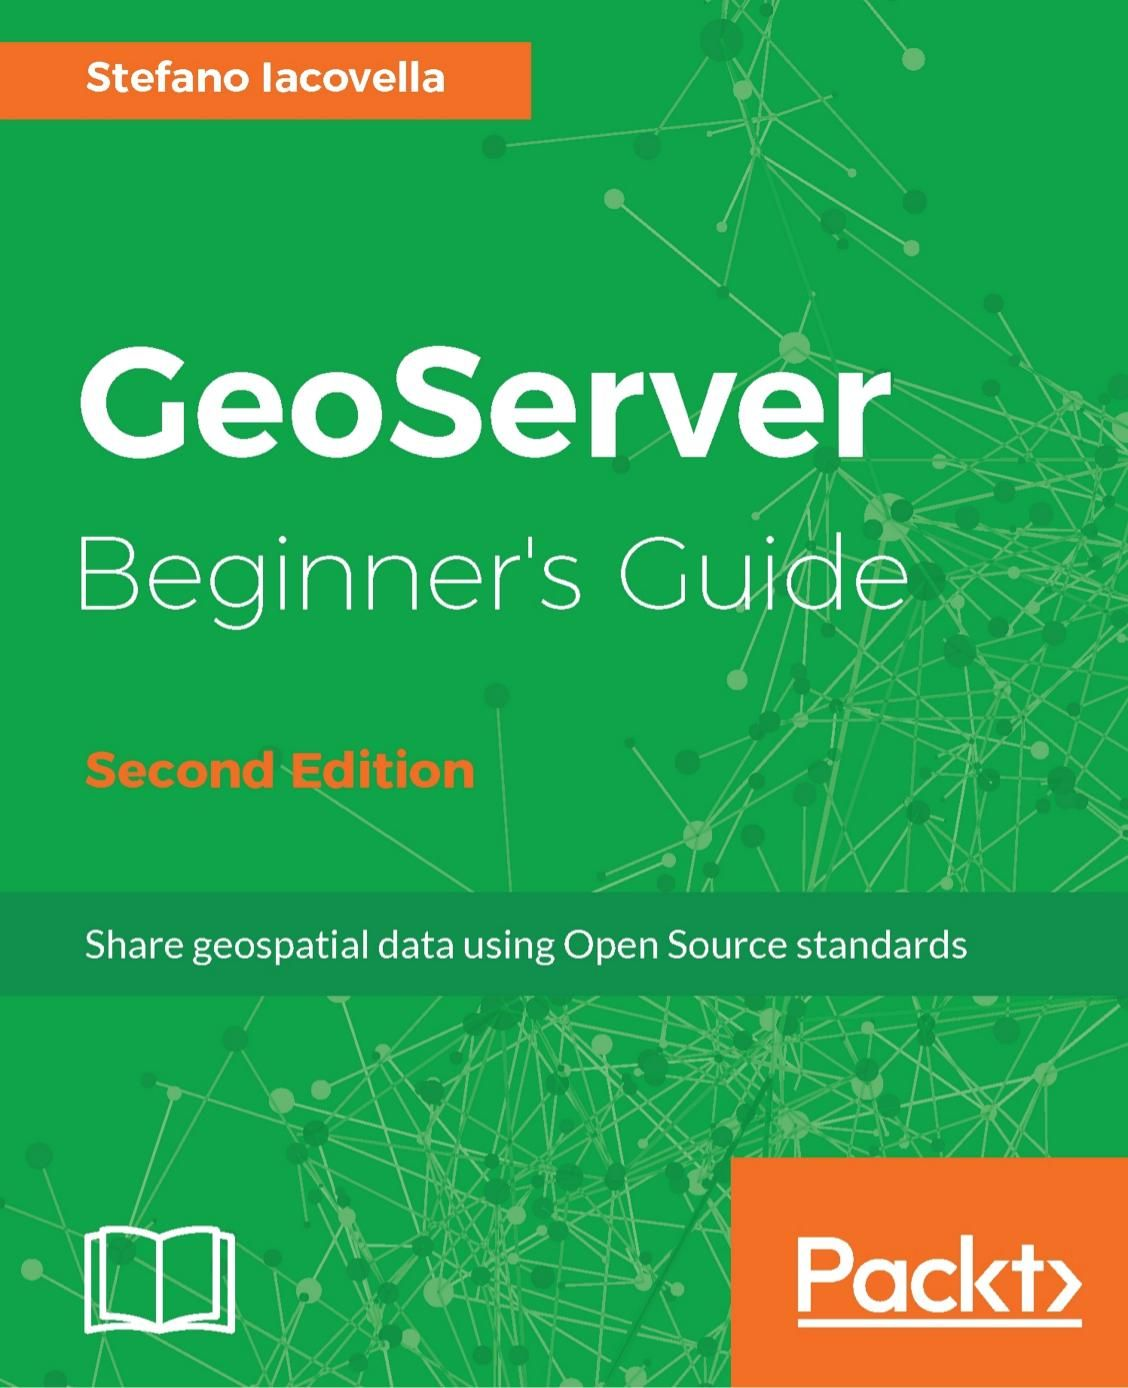 RedShelf Packt Publishing GeoServer Beginner's Guide